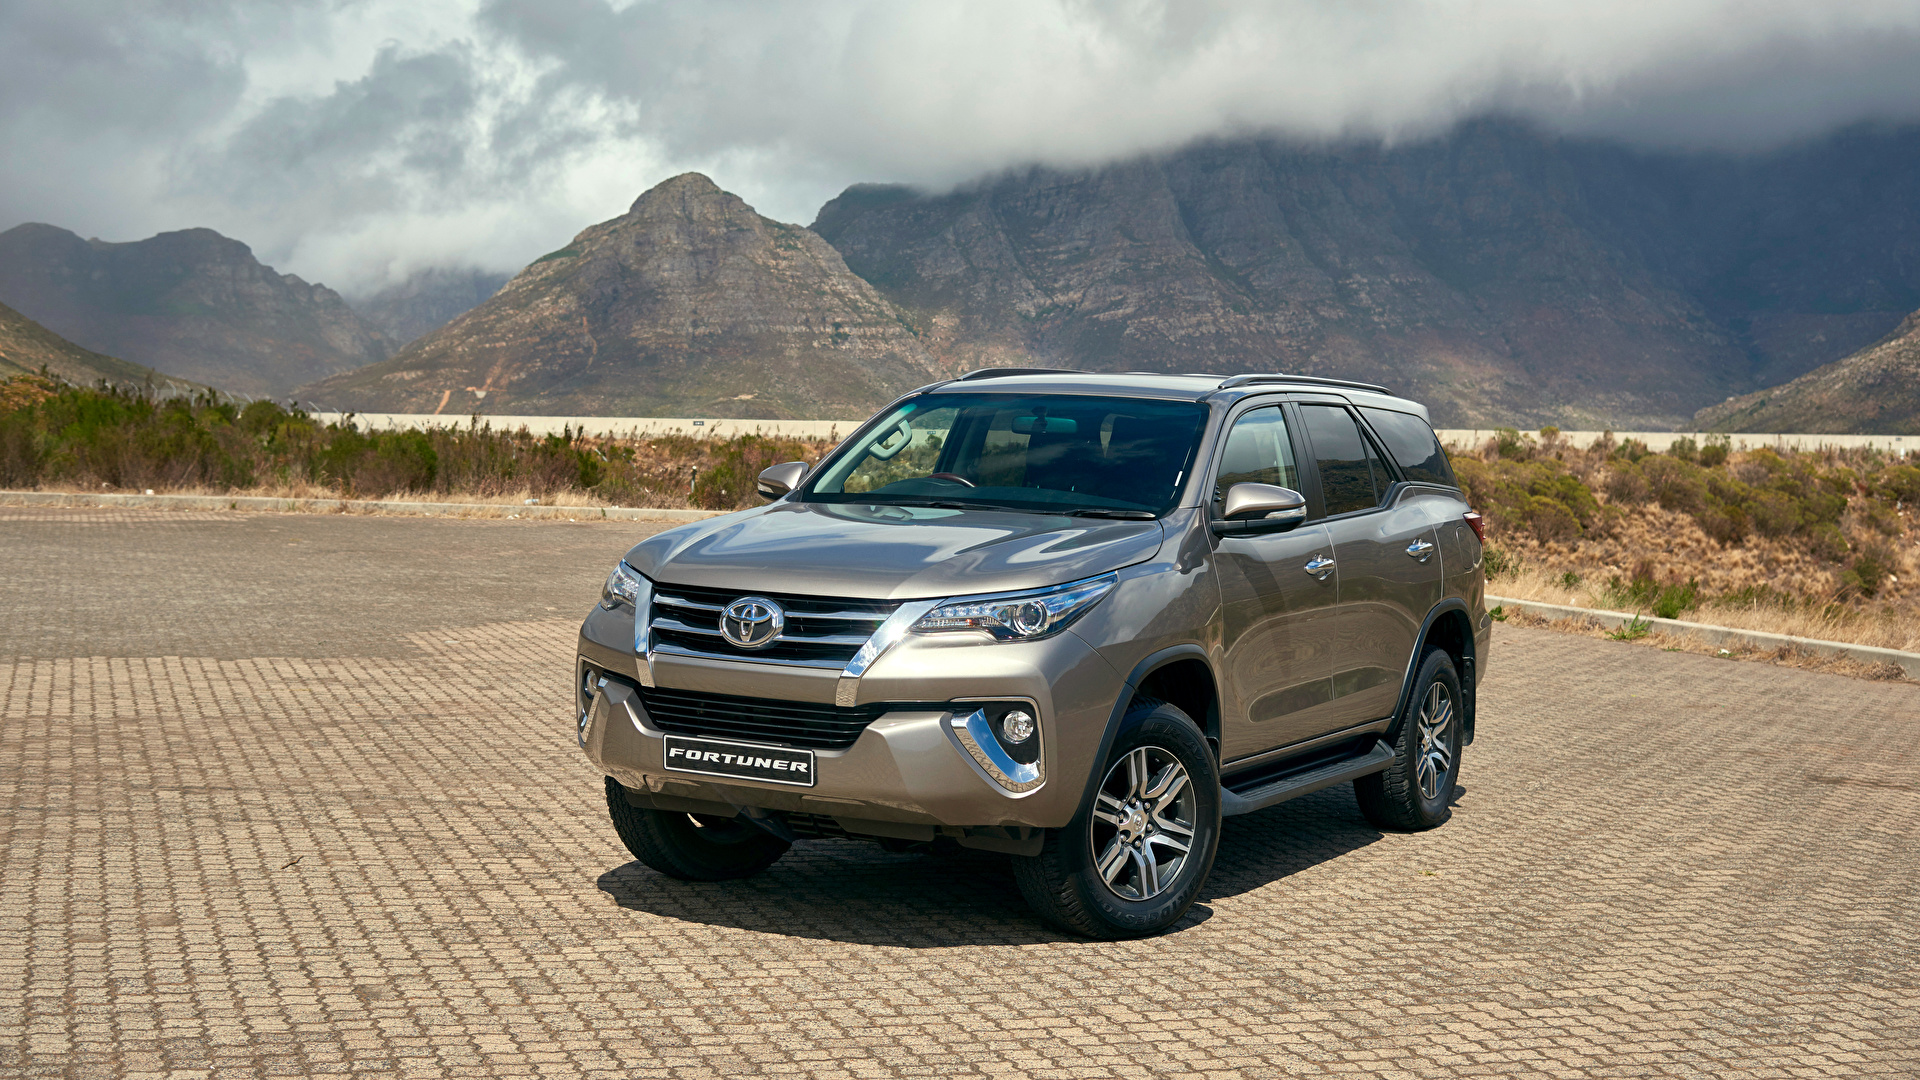 1920 X - Toyota Fortuner Auto , HD Wallpaper & Backgrounds